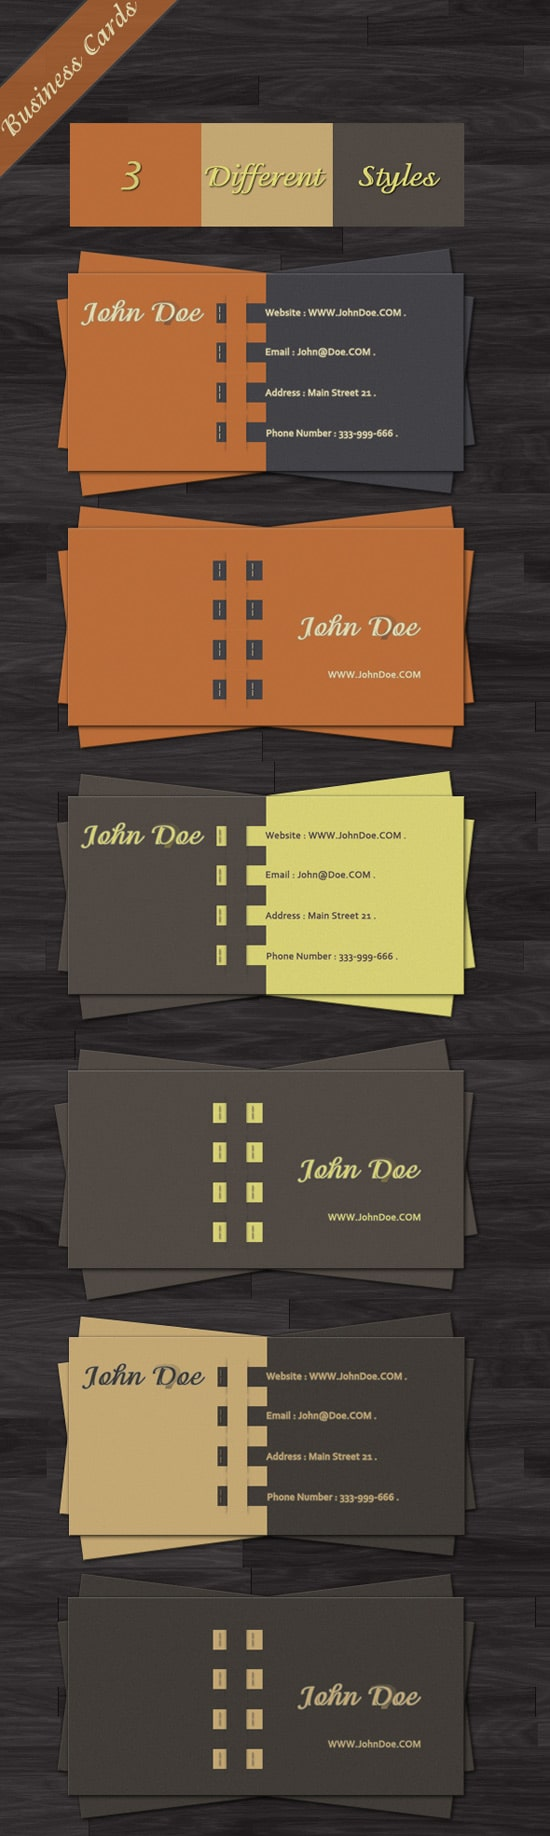 100 free business card templates designrfix business is business free psd vector business card magicingreecefo Gallery